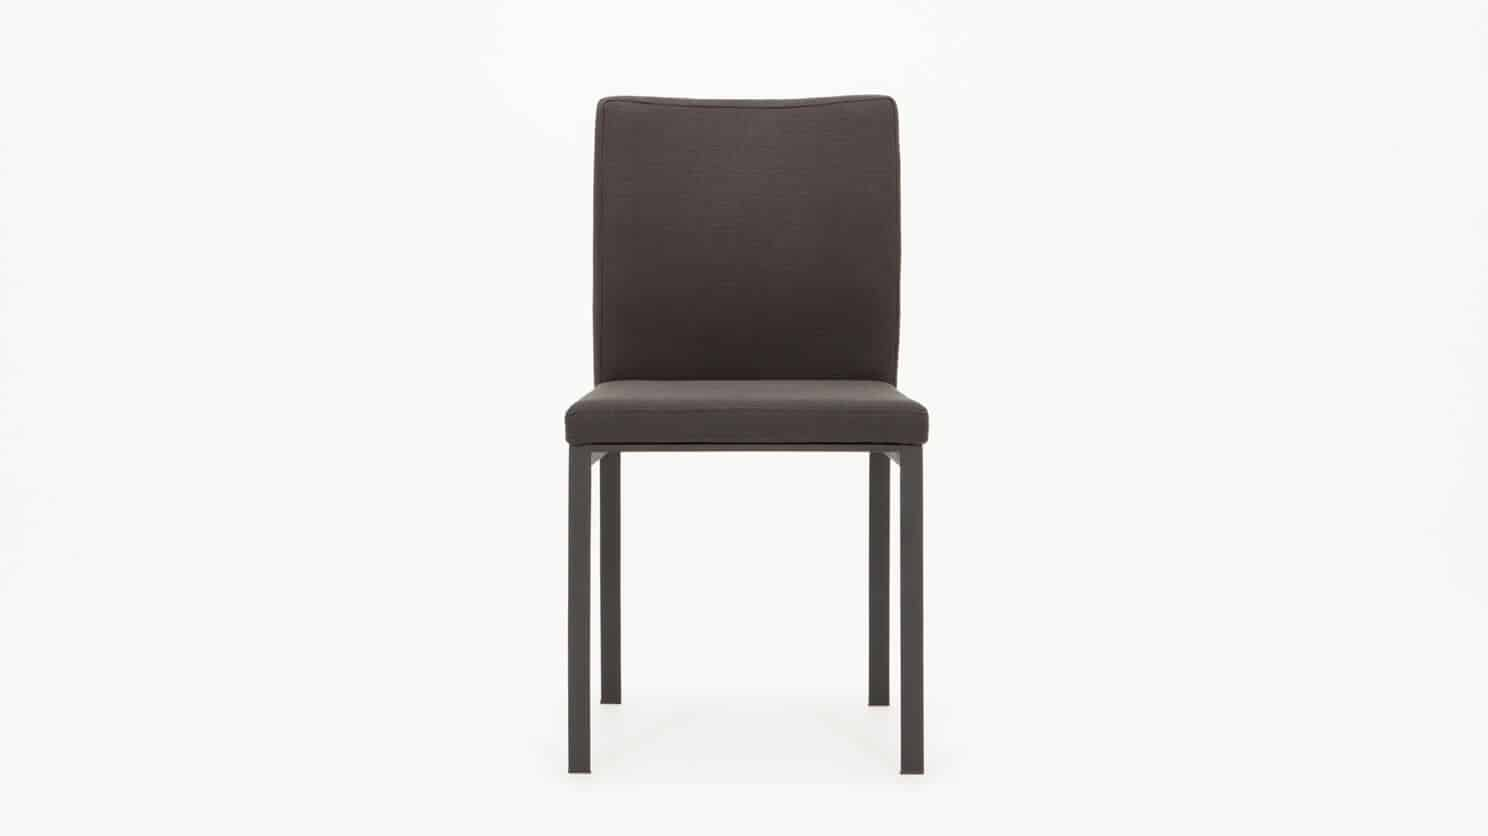 3020 395 par 3 dining chairs frank dining chair anthracite front 02 1